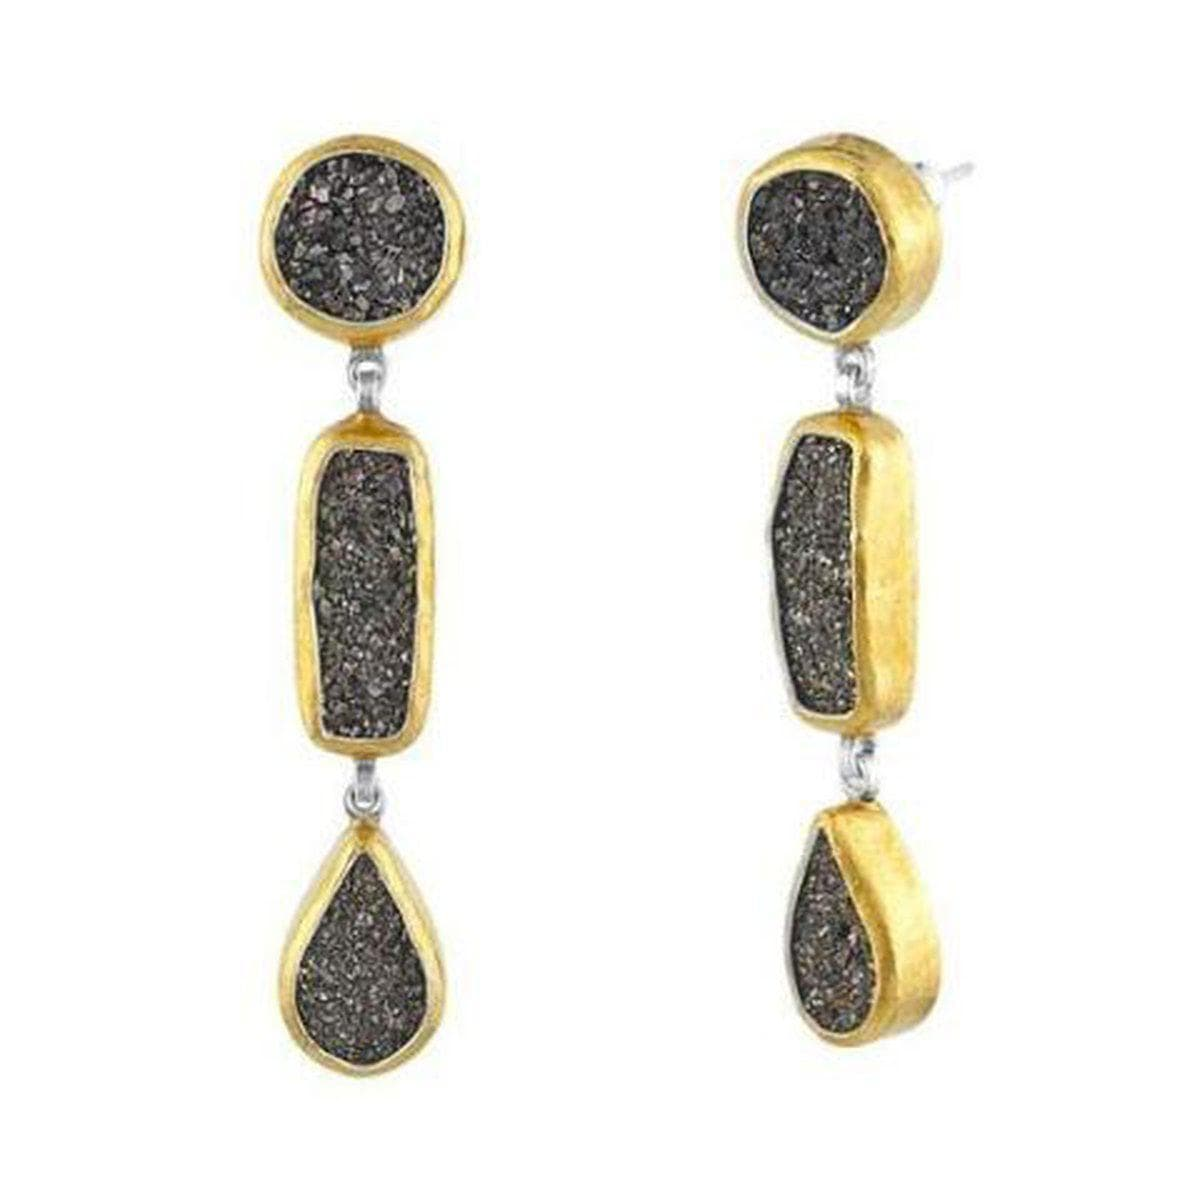 Mystere 24K Gold Drusy Quartz Earrings - SE-AH-DQB-MX-TD